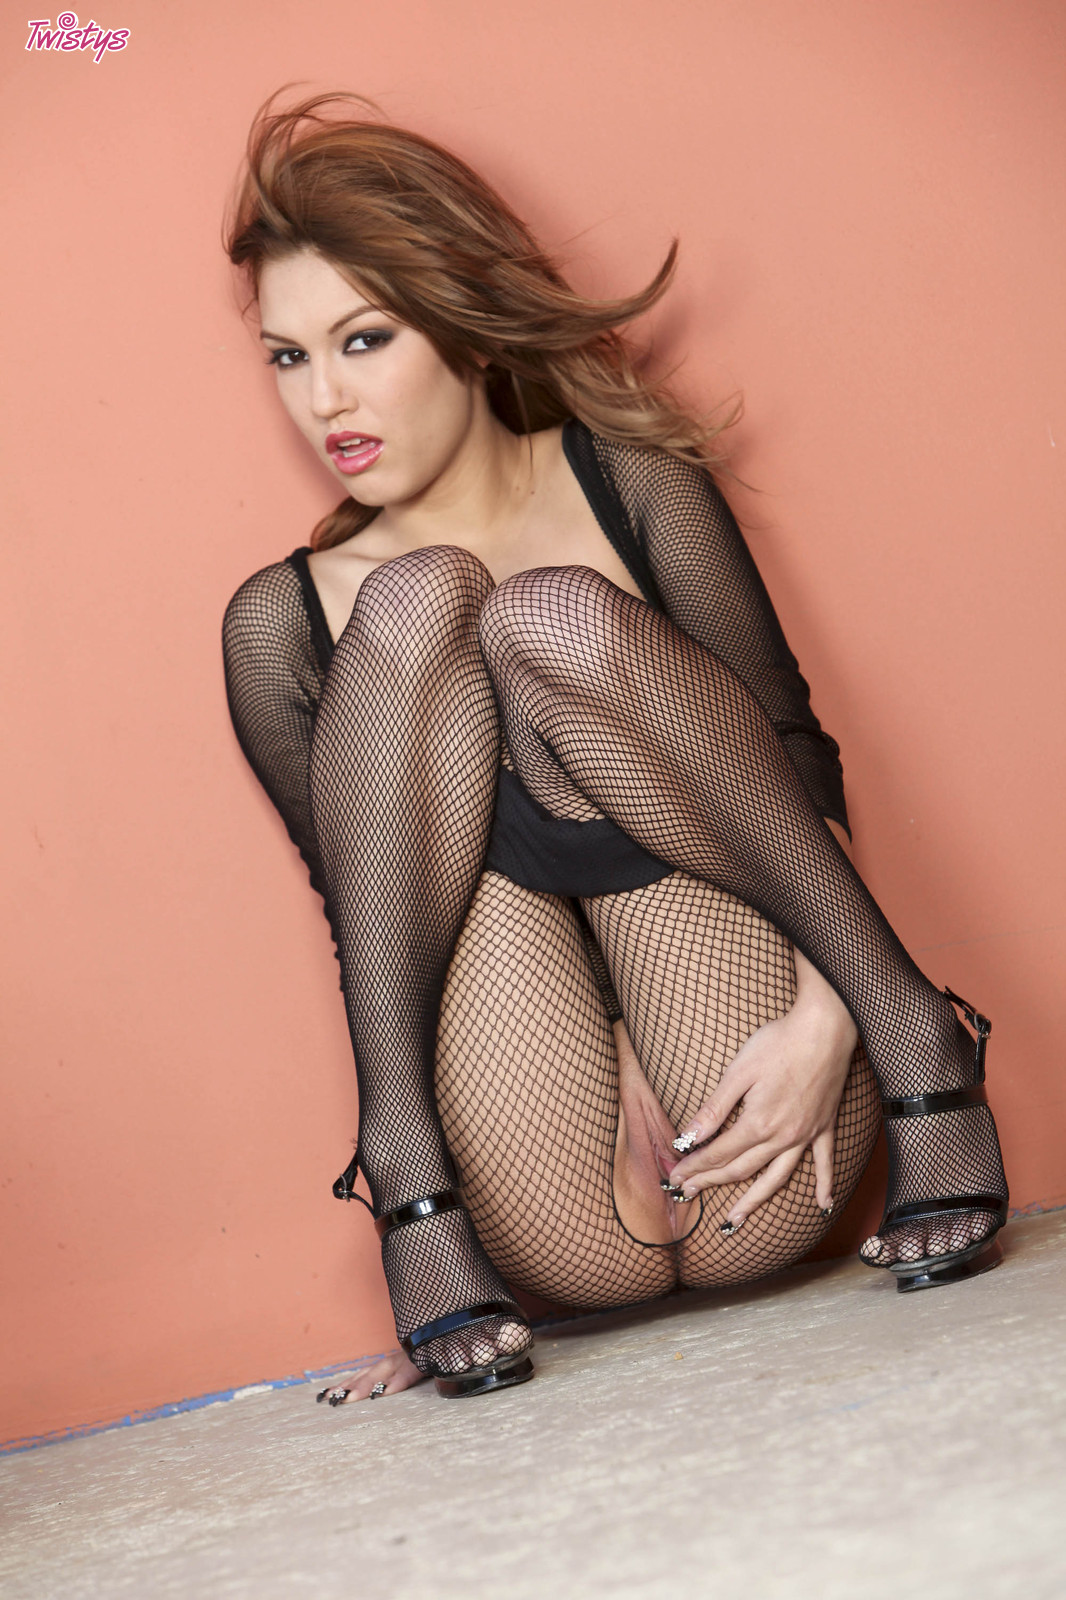 asian fishnet pussy - Fish Net Dress Wear Babe Kimberly Expose Her Sexual Parts in Different  Styles